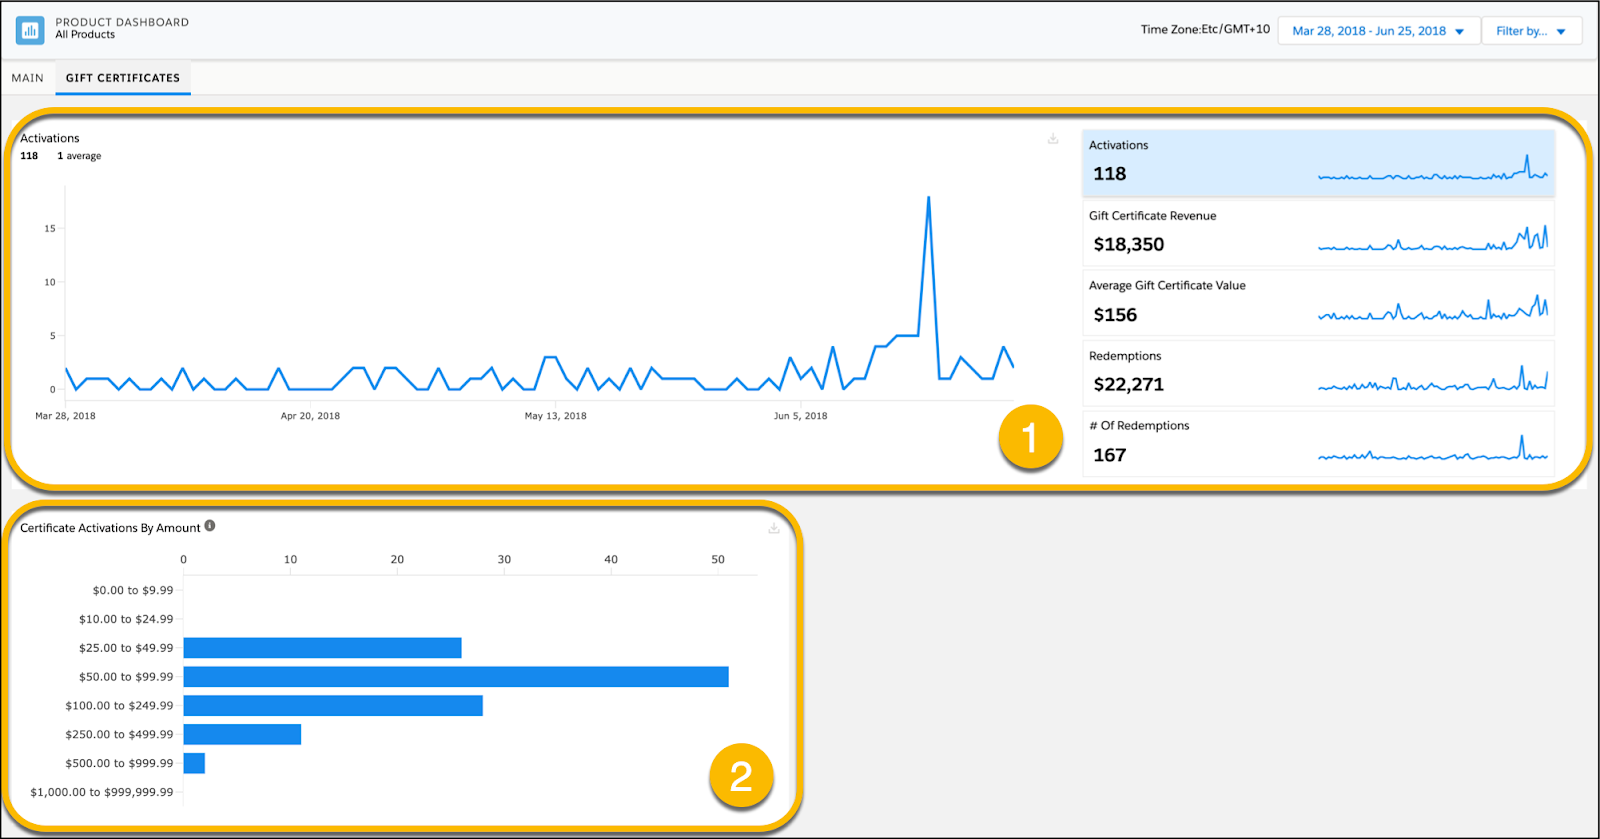 Gift certificate dashboard containing two report views; main report with activations, revenue, value, redemptions and number of redemptions options, and the certificate activation by amount.